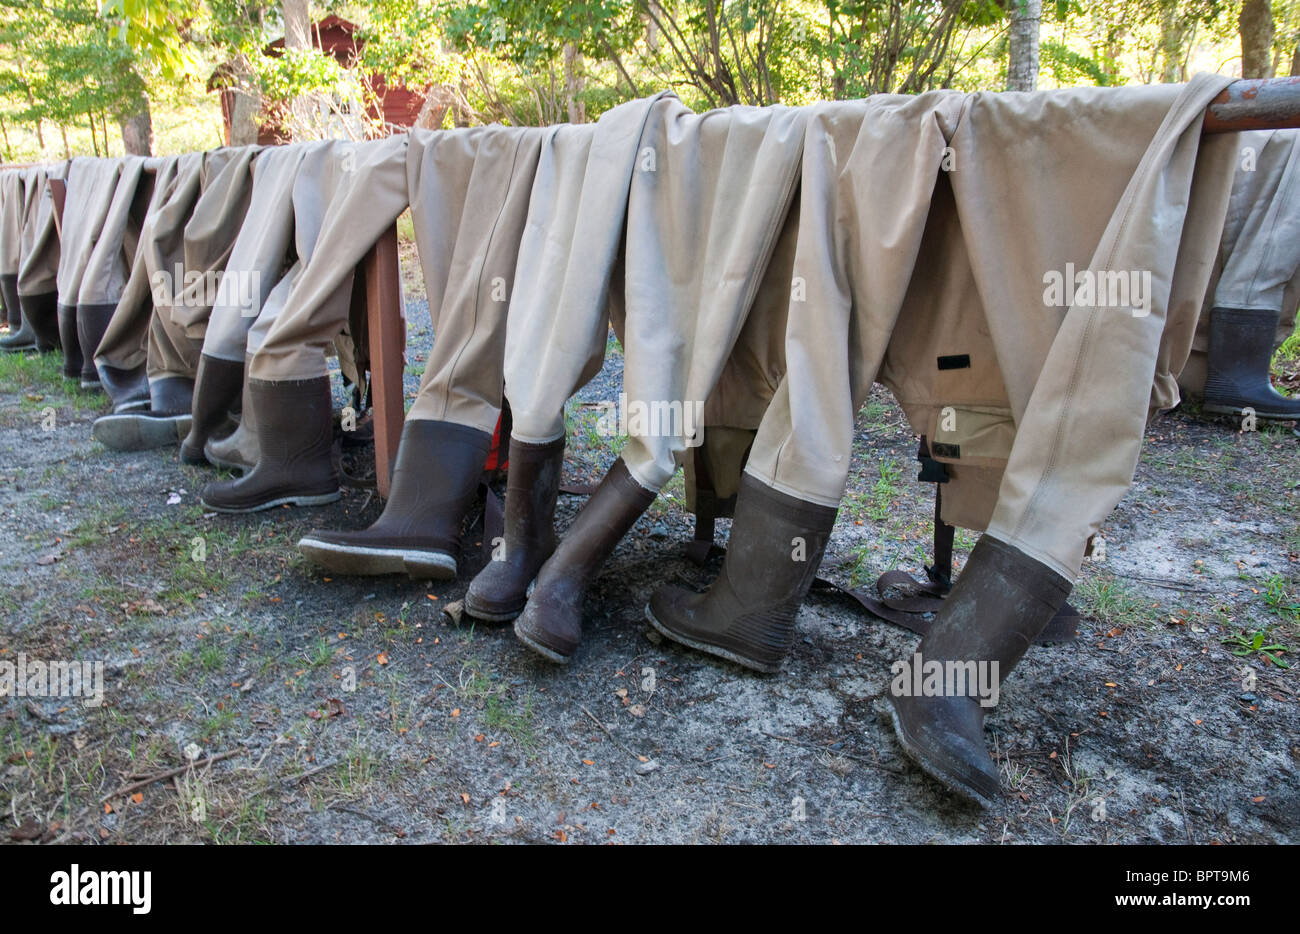 Fishing gaiters lined up on a railing Stock Photo